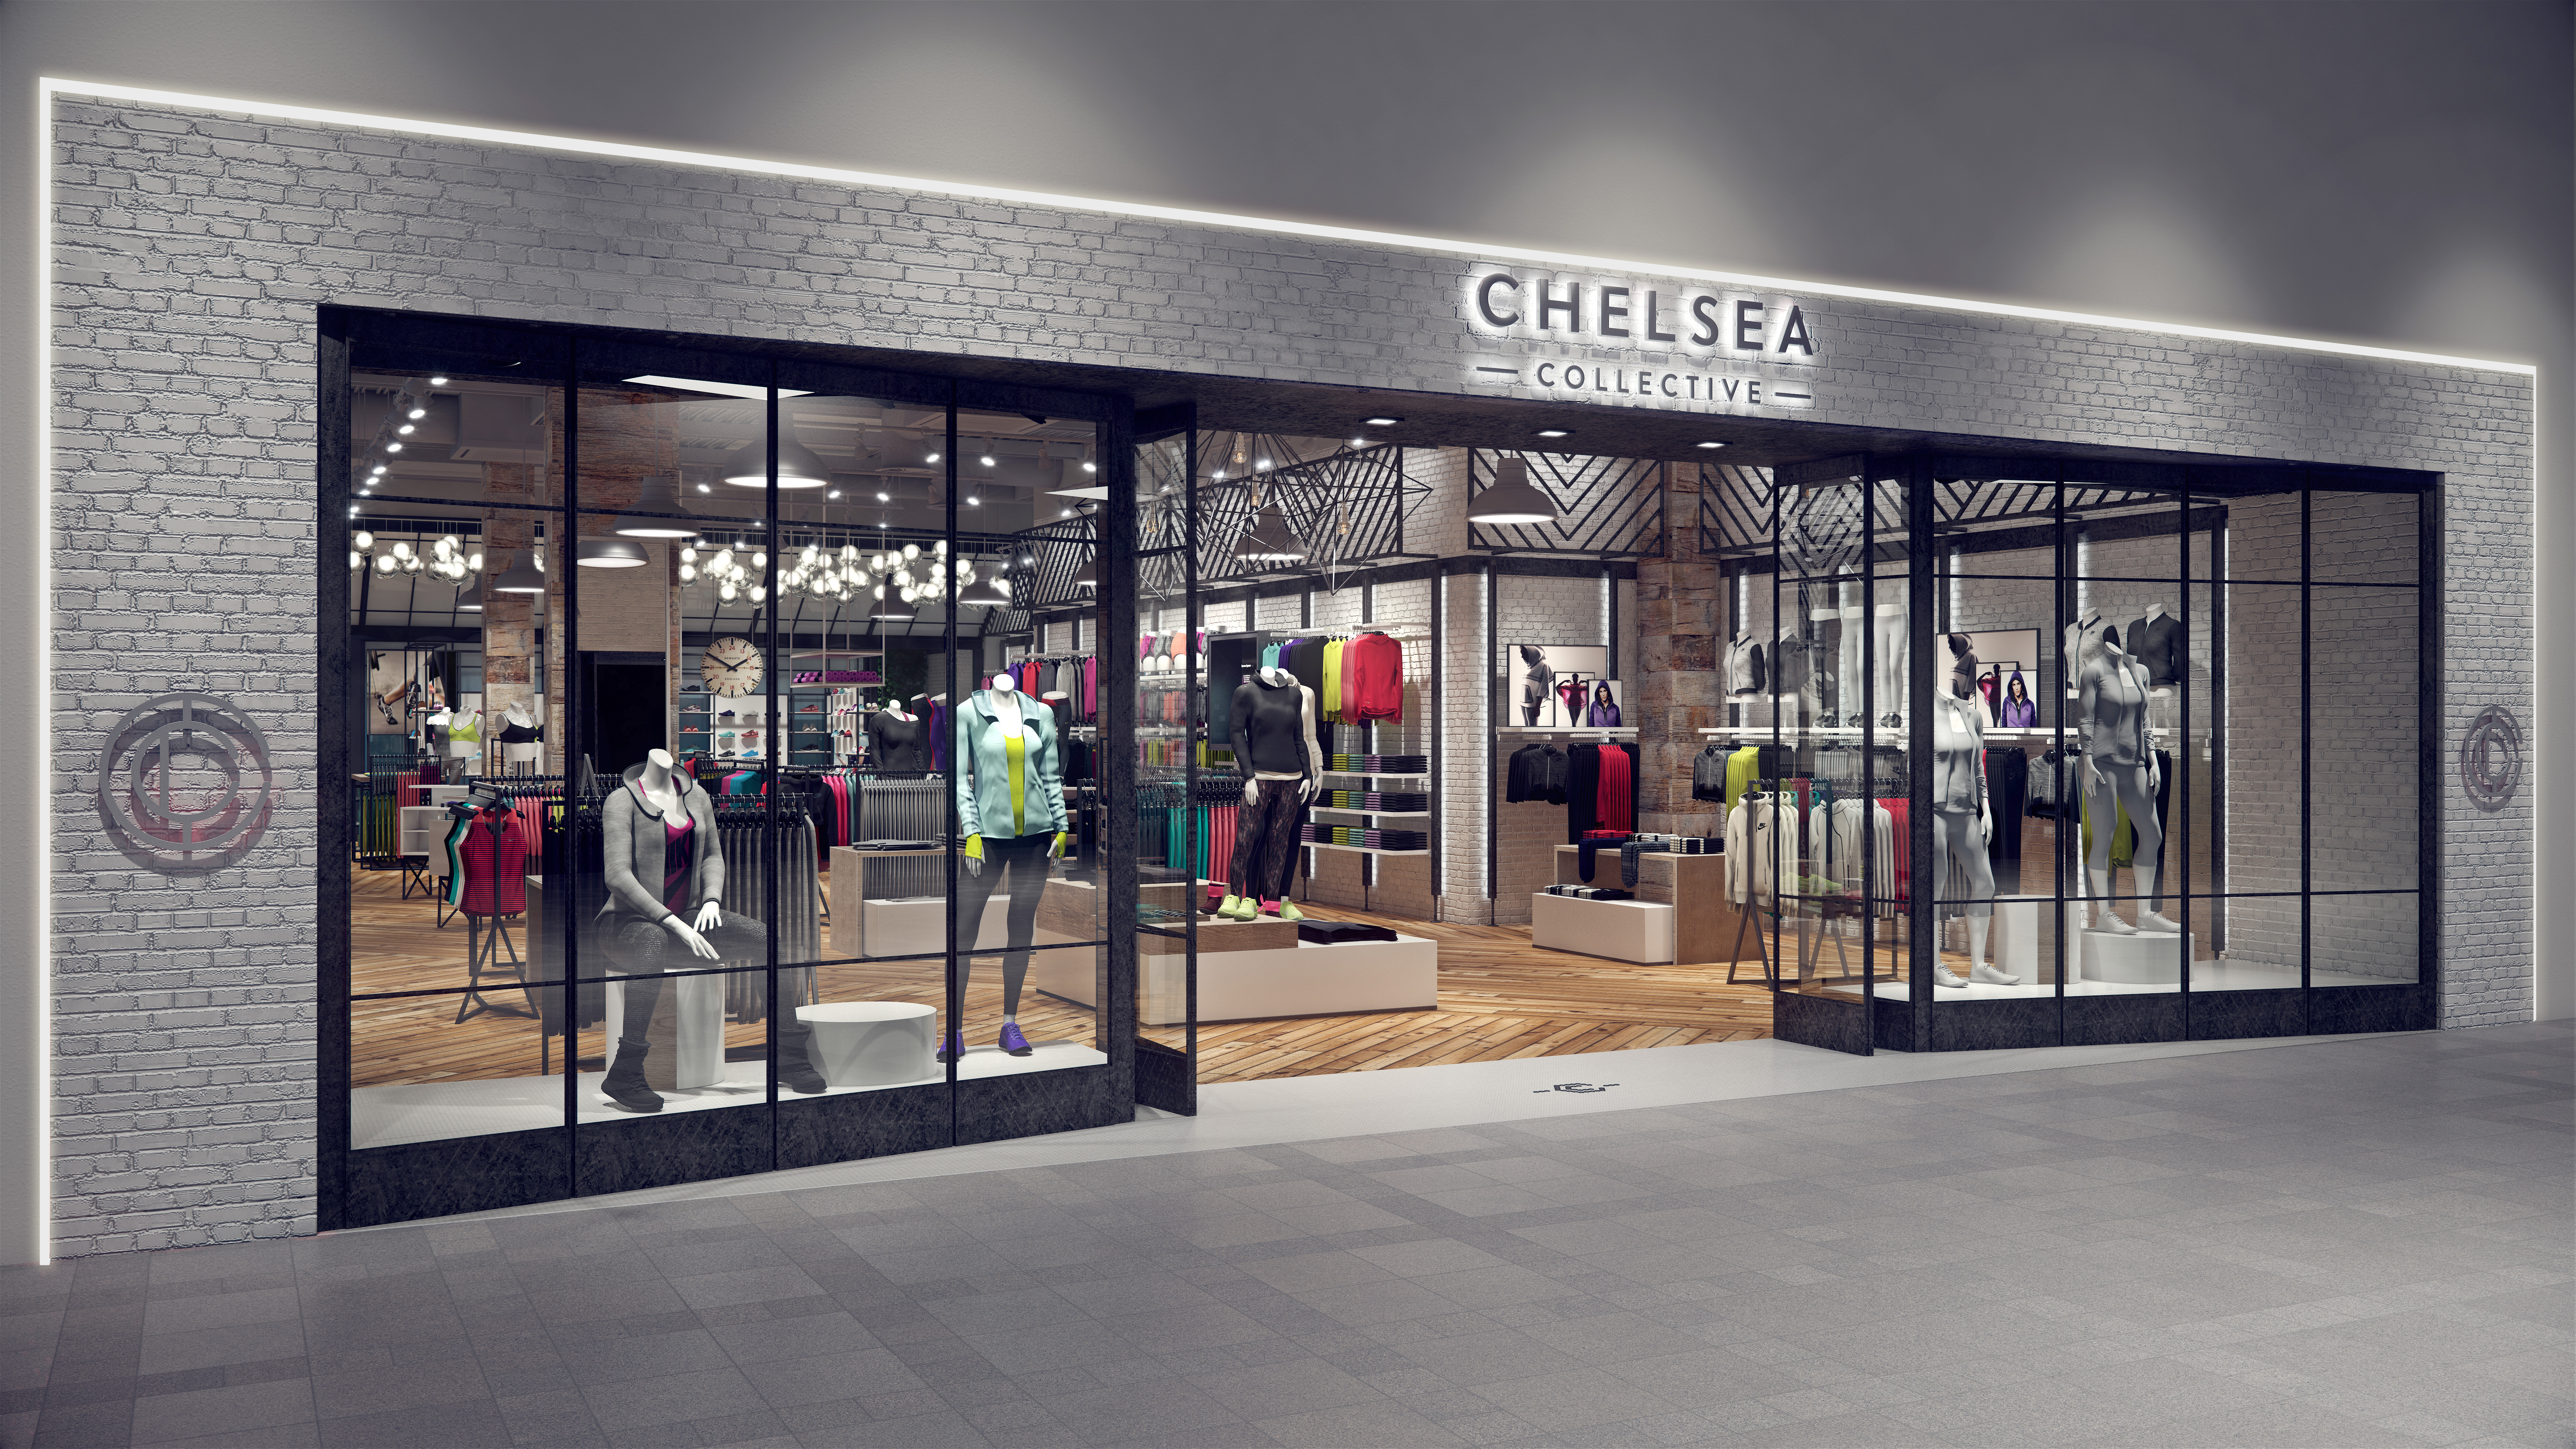 A rendering of what the female-focused Chelsea Collective store will look like when it opens later this year.